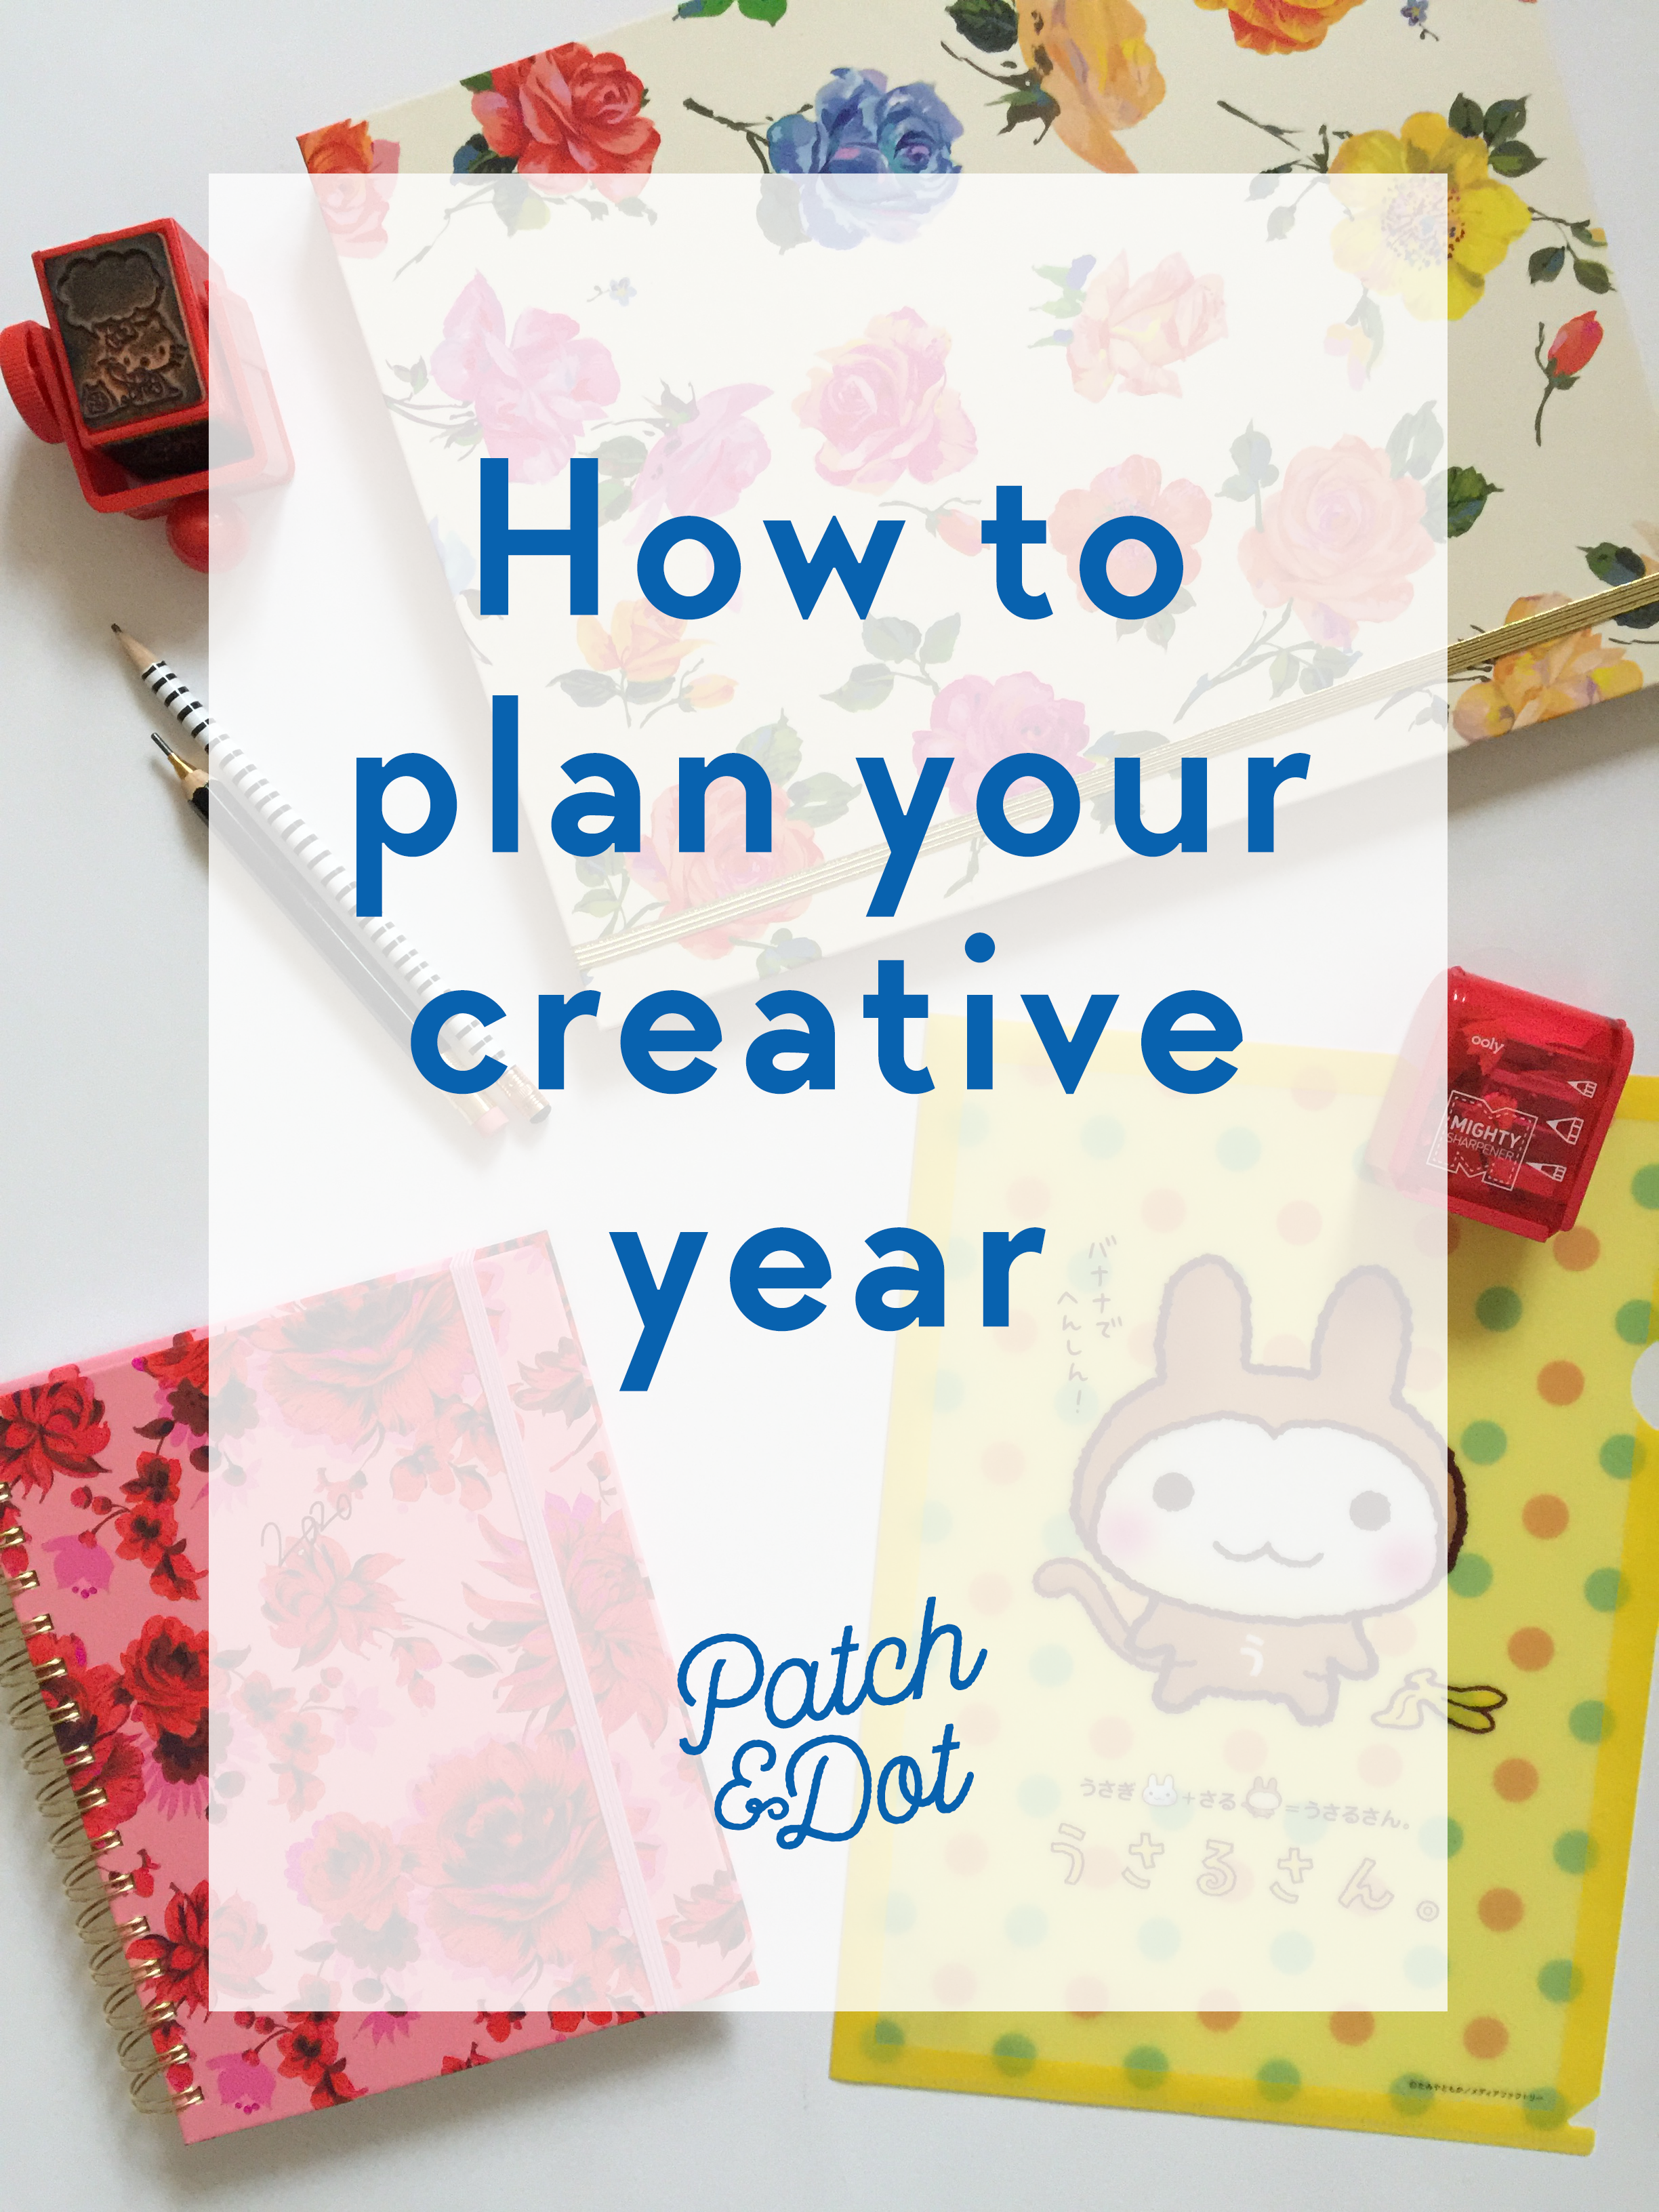 Plan your creative year with online courses